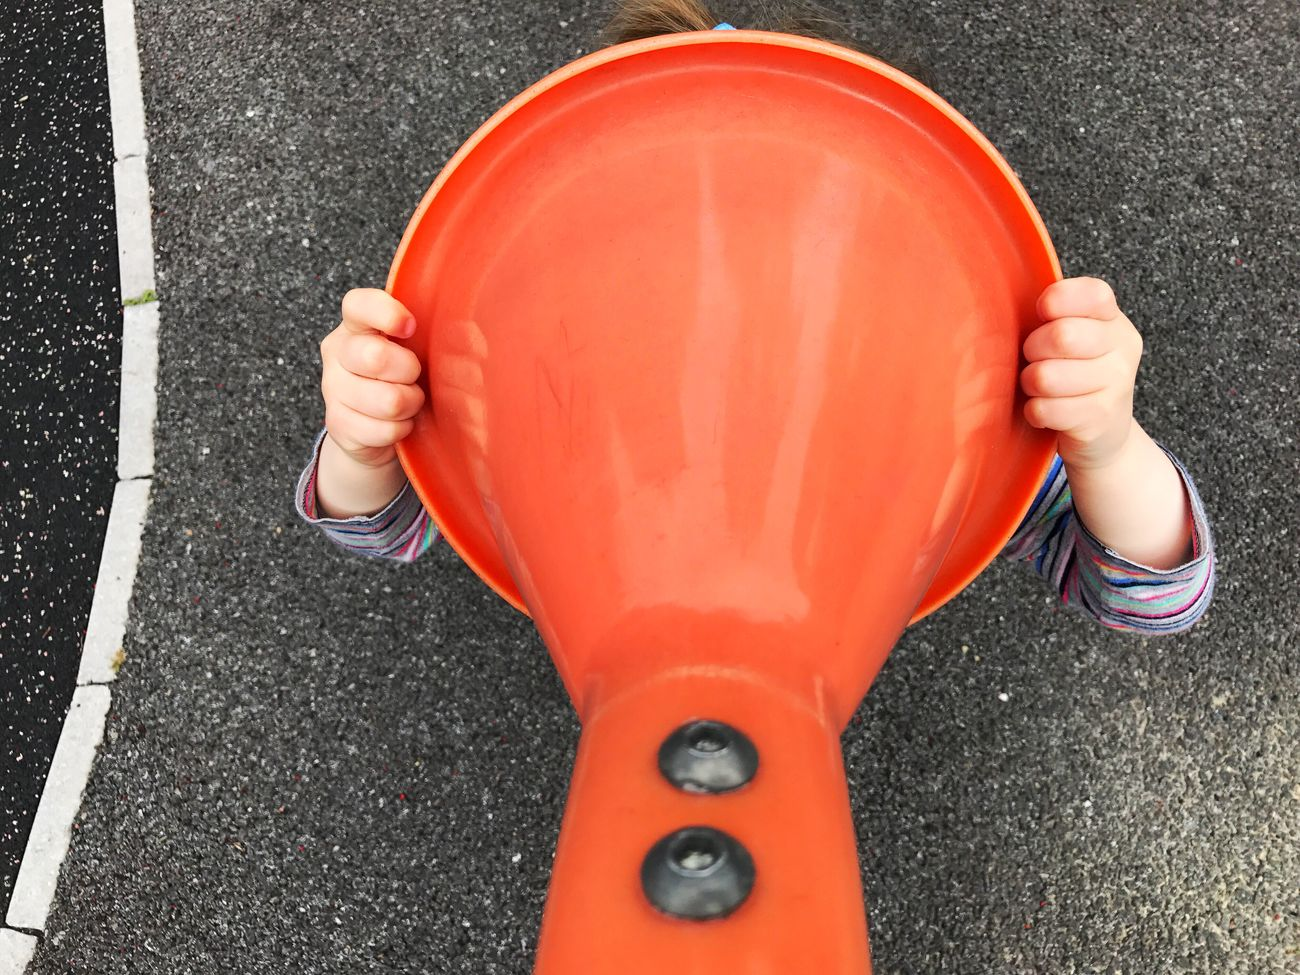 Child playing with megaphone at a playground High Angle View One Person Road Day Human Body Part Real People Close-up Outdoors Human Hand Megaphone Leisure Activity Playground Childhood Child Cry For Help Kids Kids Being Kids Communication EyeEm Selects People